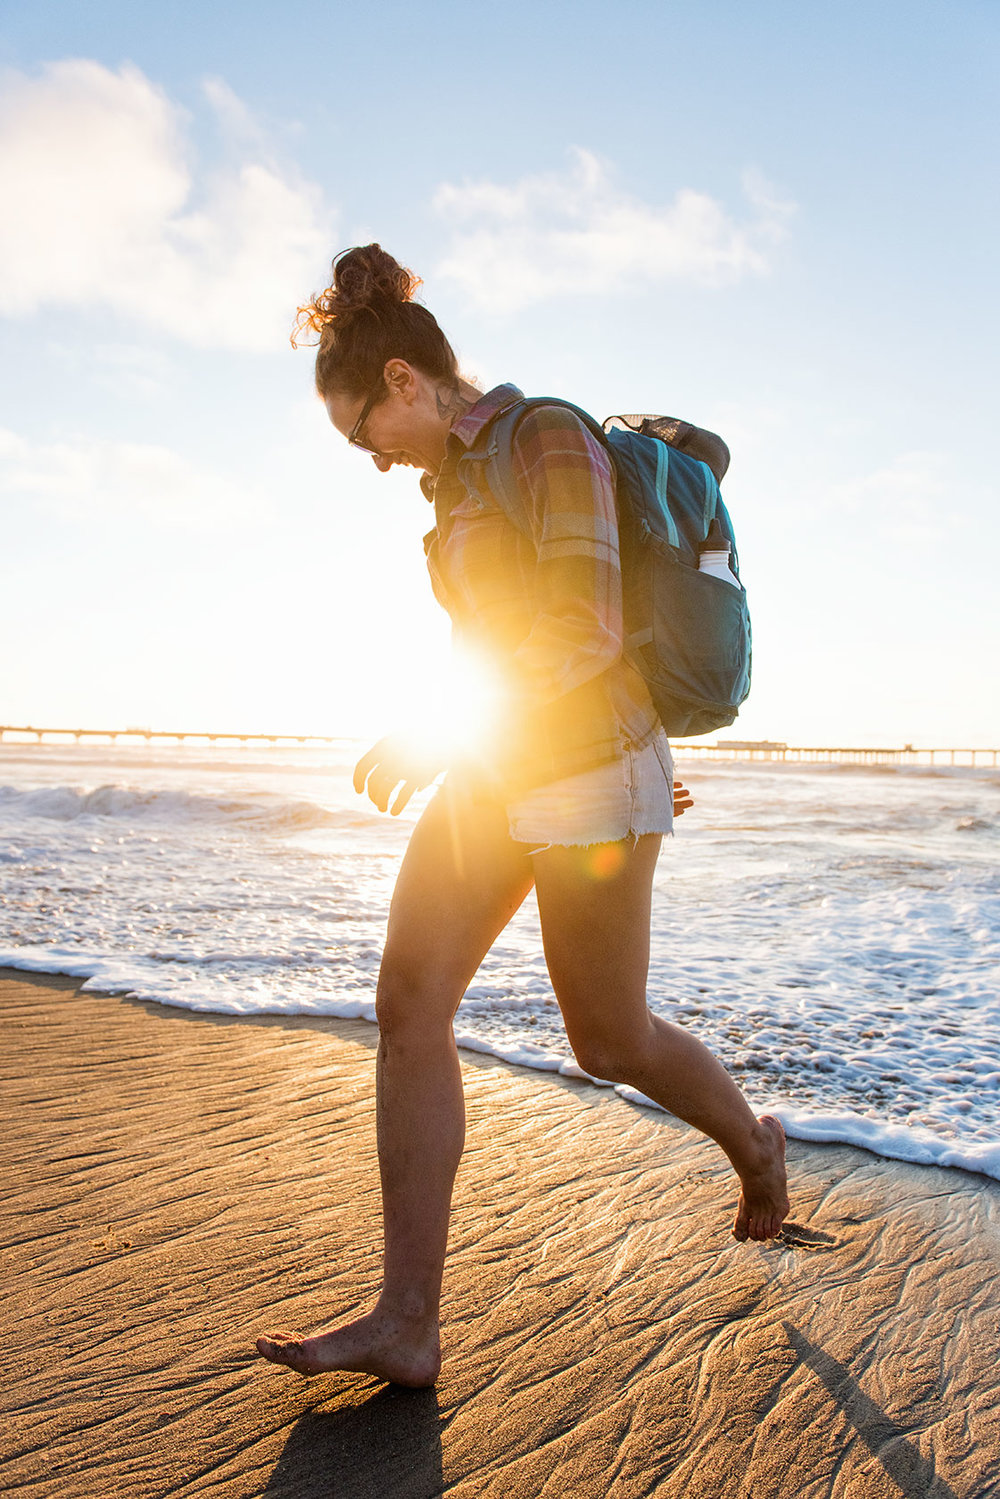 austin-trigg-patagonia-day-pack-southern-califronia-lifestle-product-backpack-adventure-pier-ocean-wave-sunset-running-sun-flare.jpg